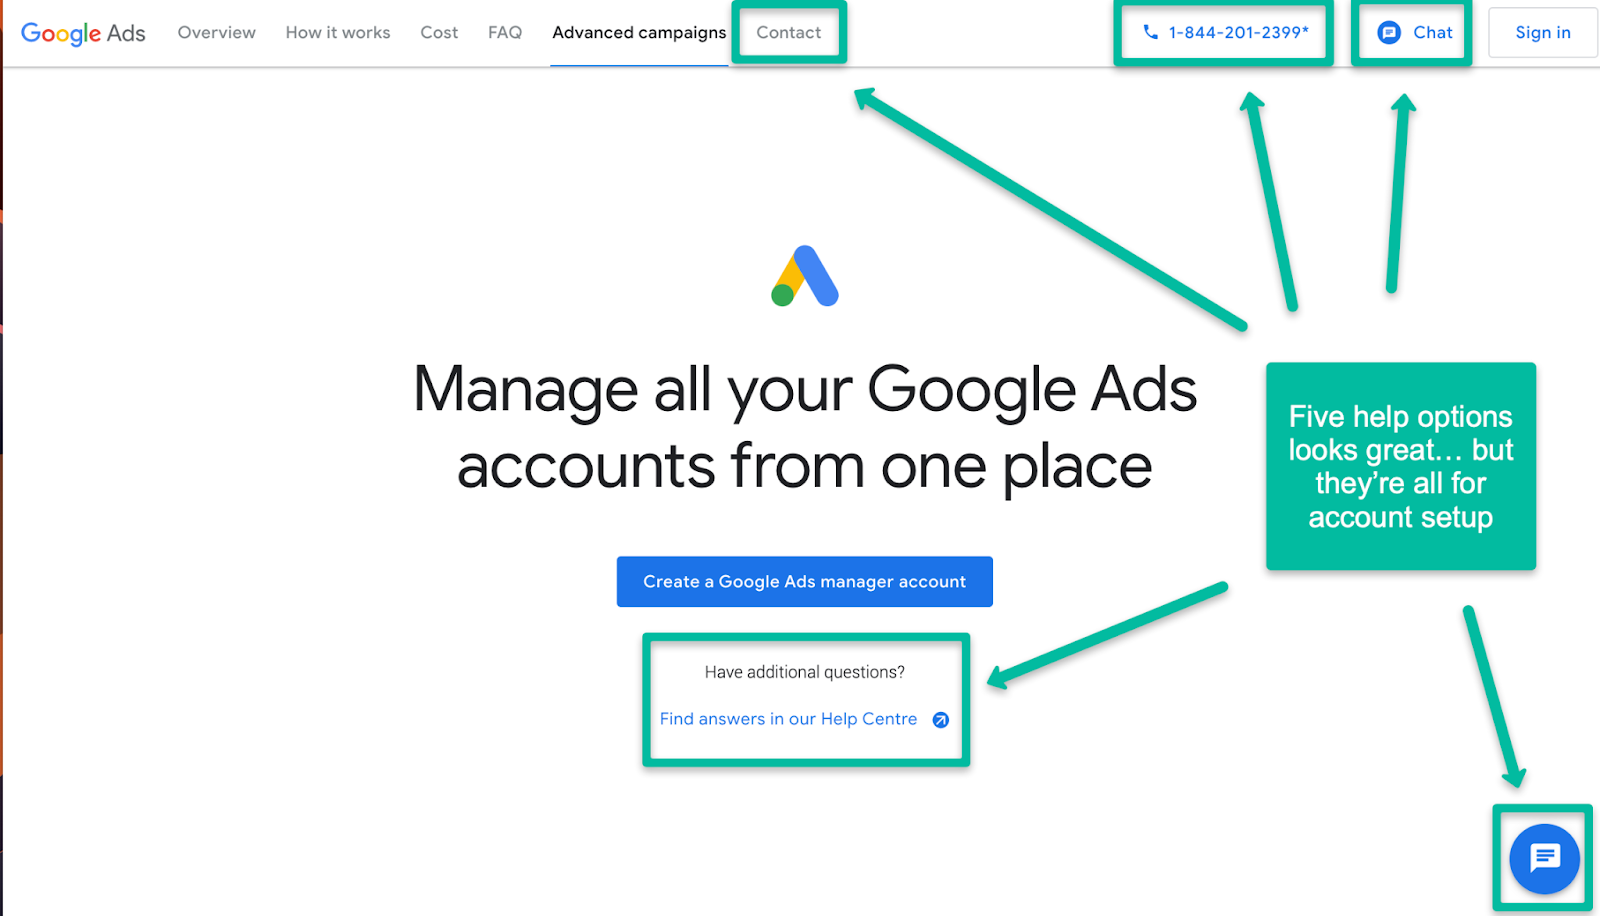 Google Ads Manager help looks like it's overloaded with support options. But every one of these relates to creating your new account and setting up your first campaign